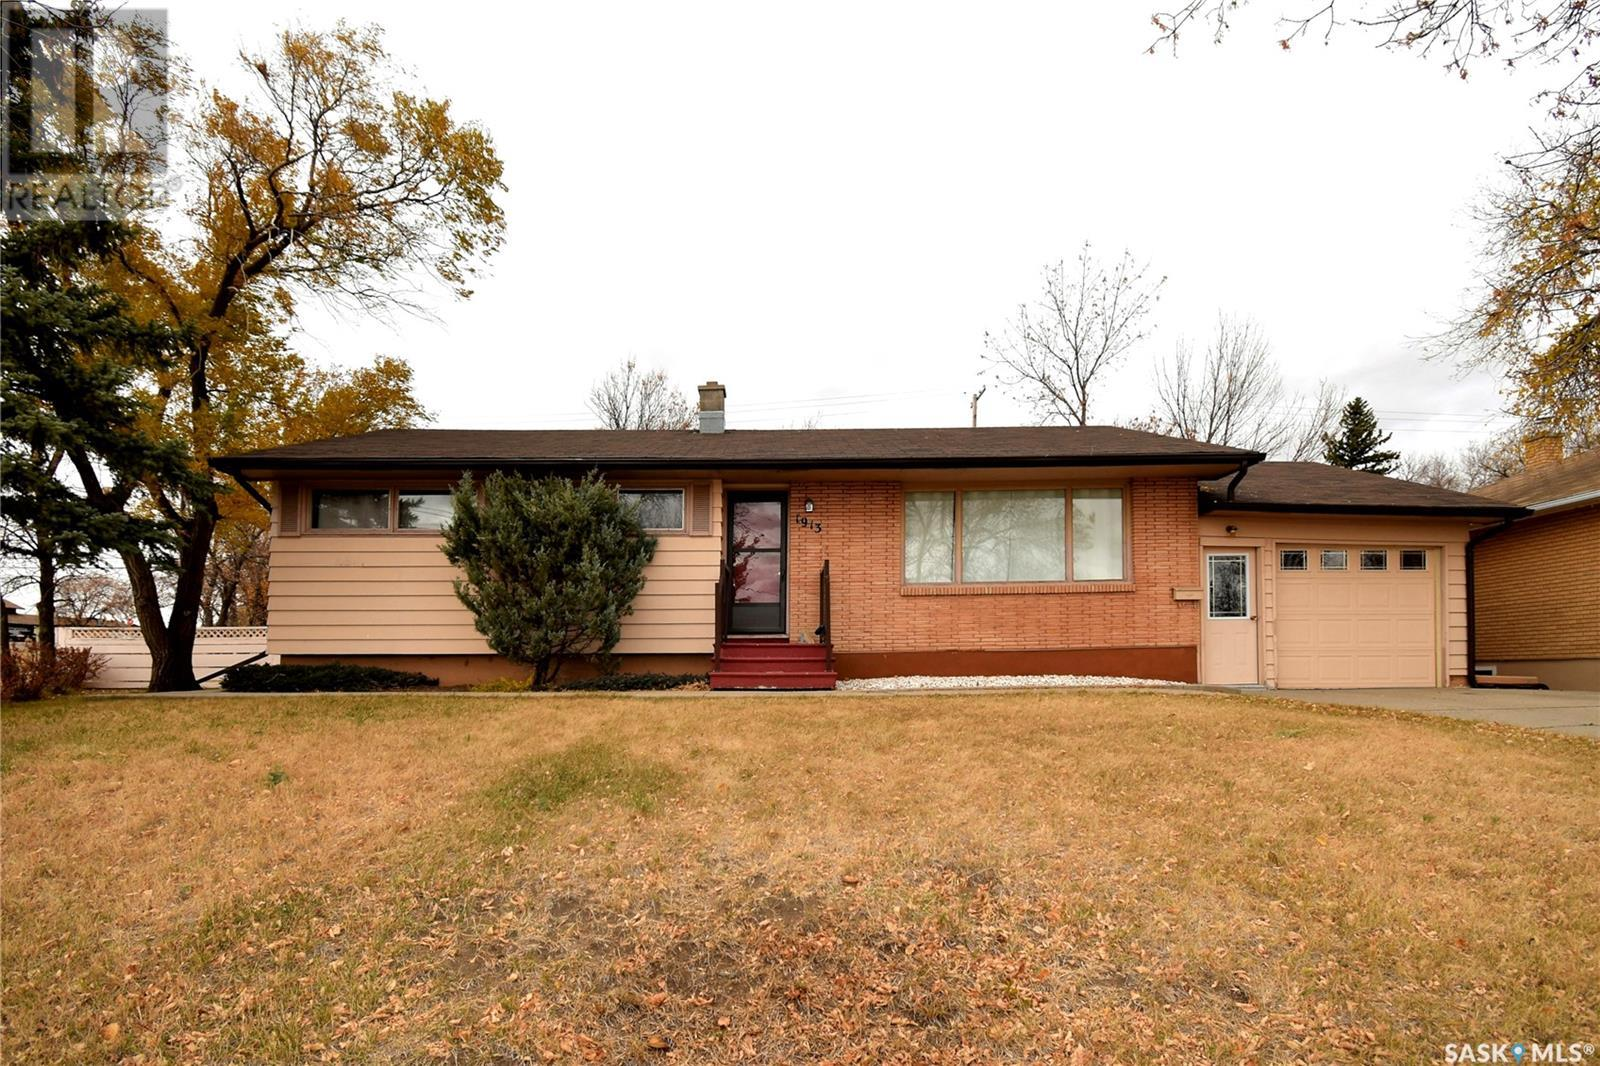 1913 Westview PL, Estevan, Saskatchewan, Canada S4A0X1, 4 Bedrooms Bedrooms, Register to View ,2 BathroomsBathrooms,House,For Sale,SK846342